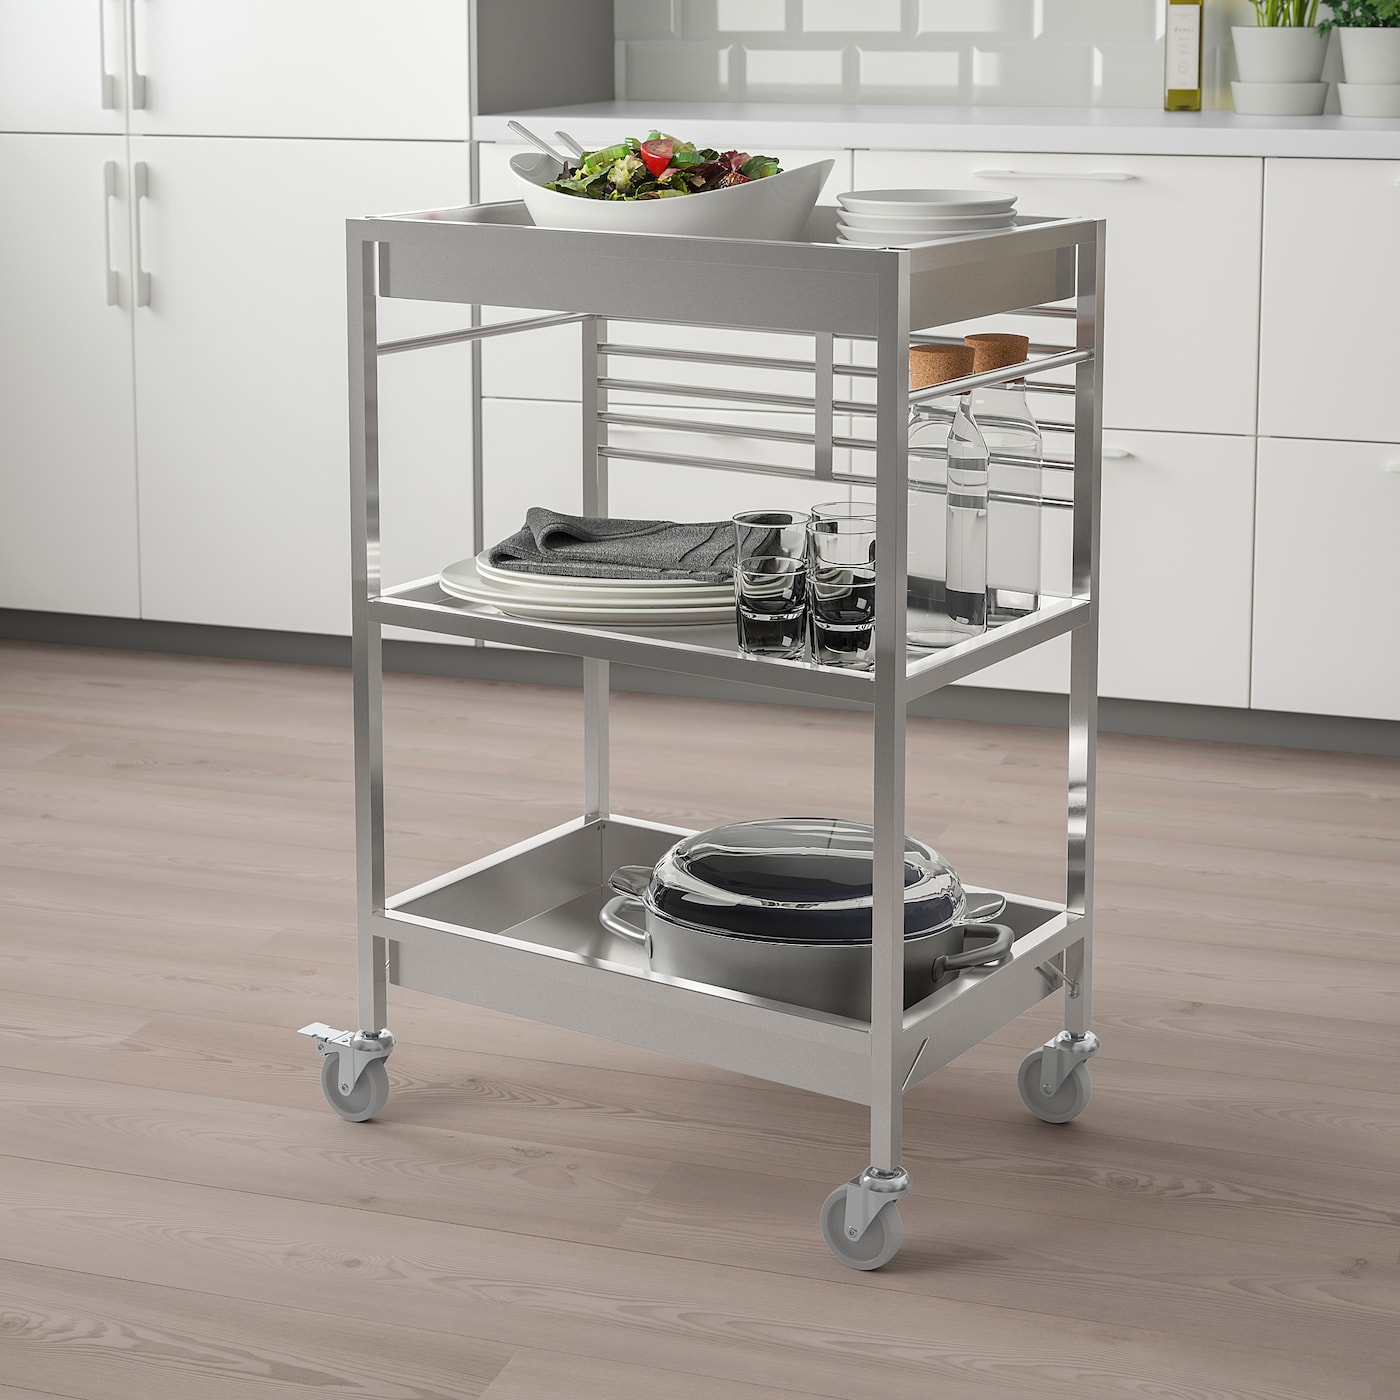 KUNGSFORS Kitchen cart, stainless steel, 23 5/8x15 3/4 ""